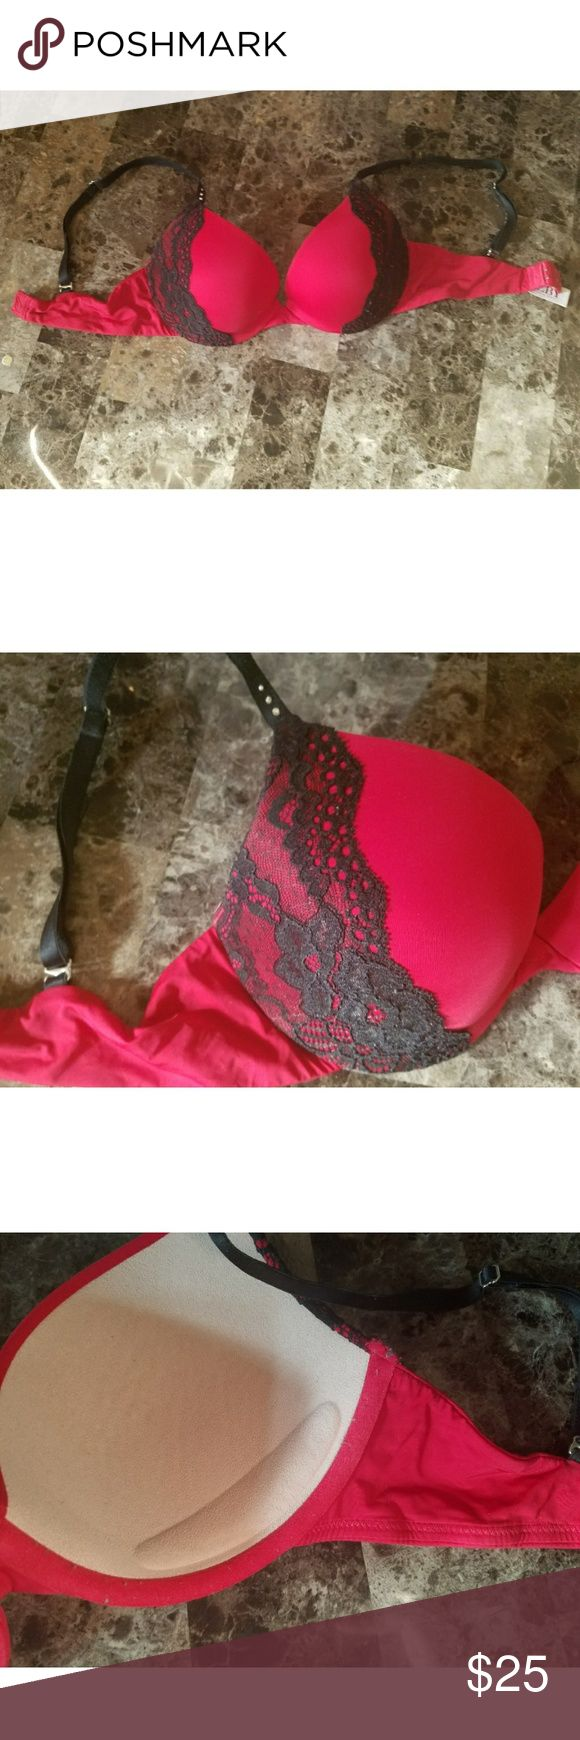 Frederick's of Hollywood Biofit bra Red and black lace Biolift Playboy bra from Frederick's of Hollywood. Flexible push up bra. Wasn't worn very many times. Still in great condition. 32D. Straps fully adjustable. Bundle with other bras for a discount! Frederick's of Hollywood Intimates & Sleepwear Bras